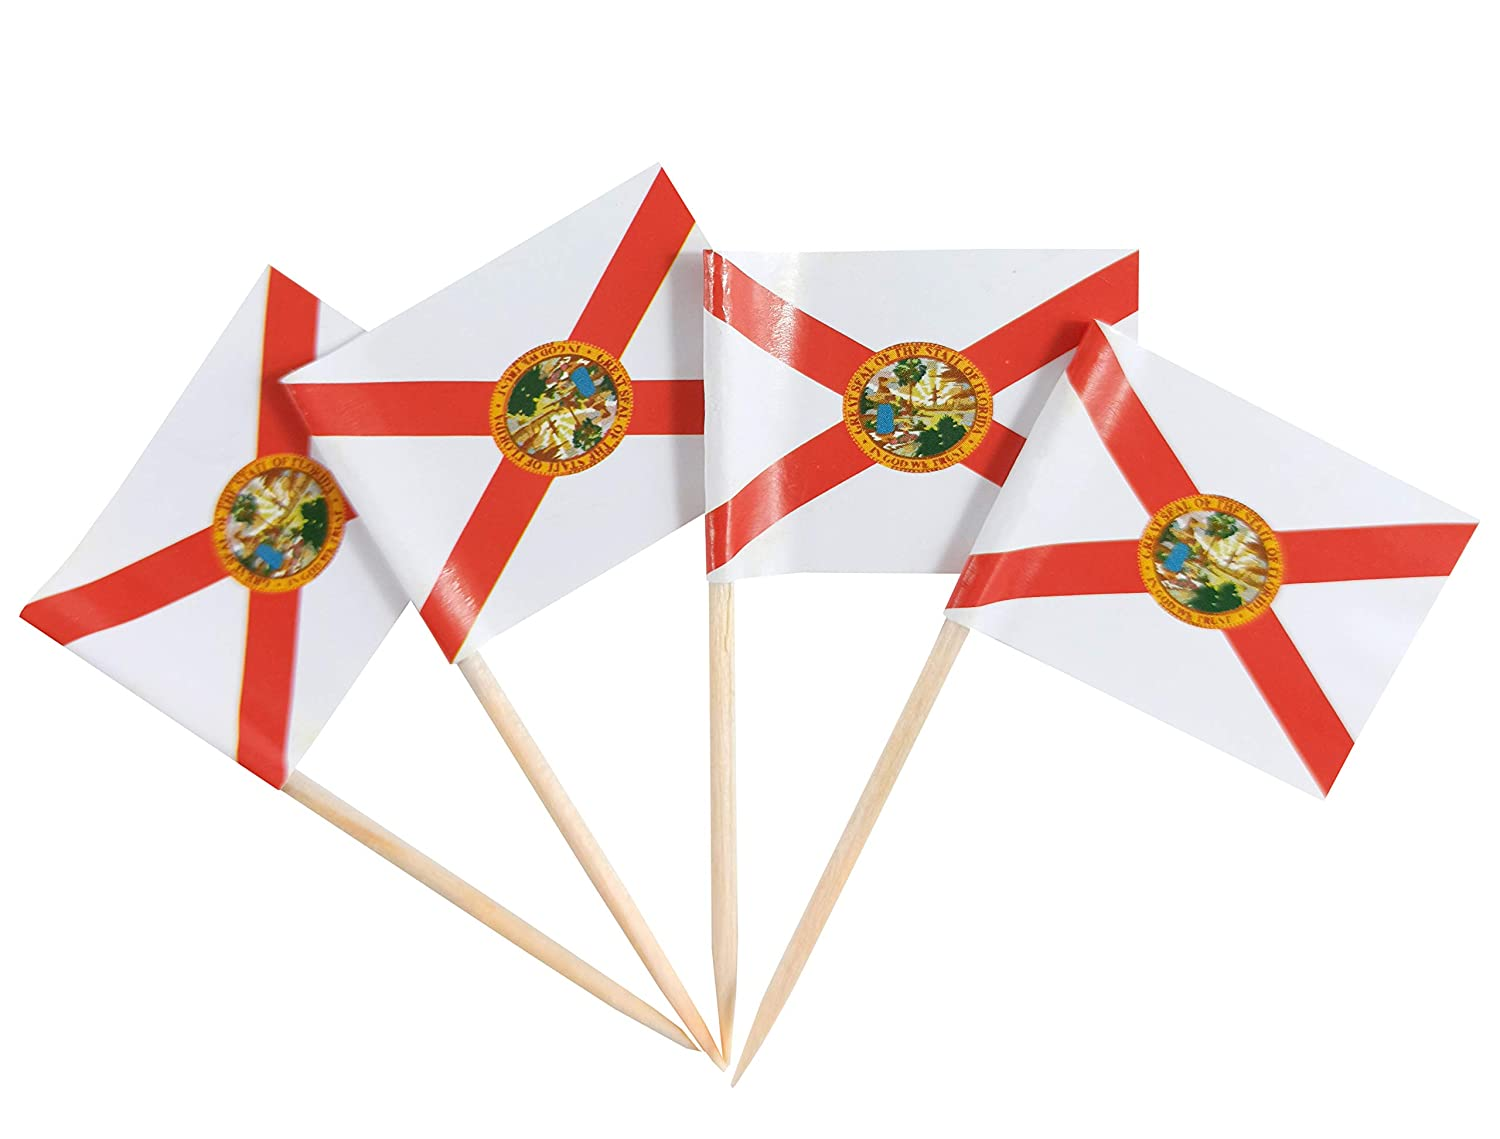 JBCD Florida Floridian Flags Toothpick Toppers Max 88% OFF Cupcake F Indefinitely 100 Pcs